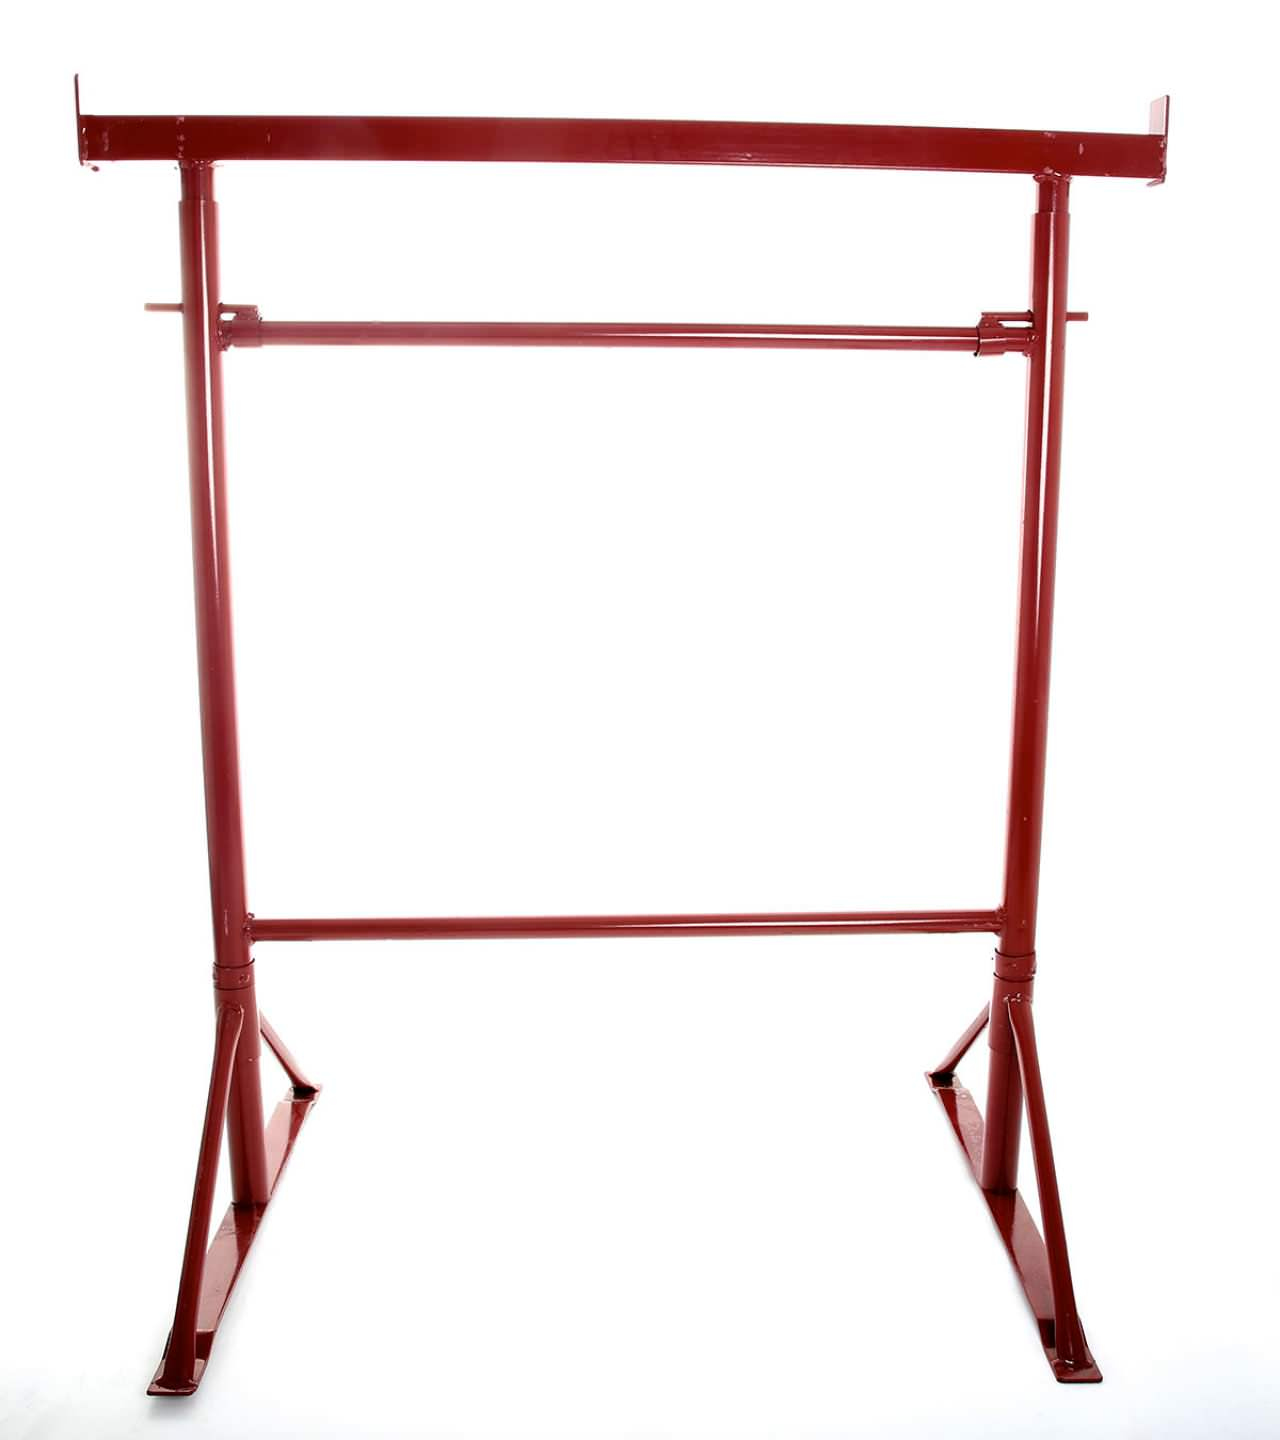 Adjustable Steel Trestles